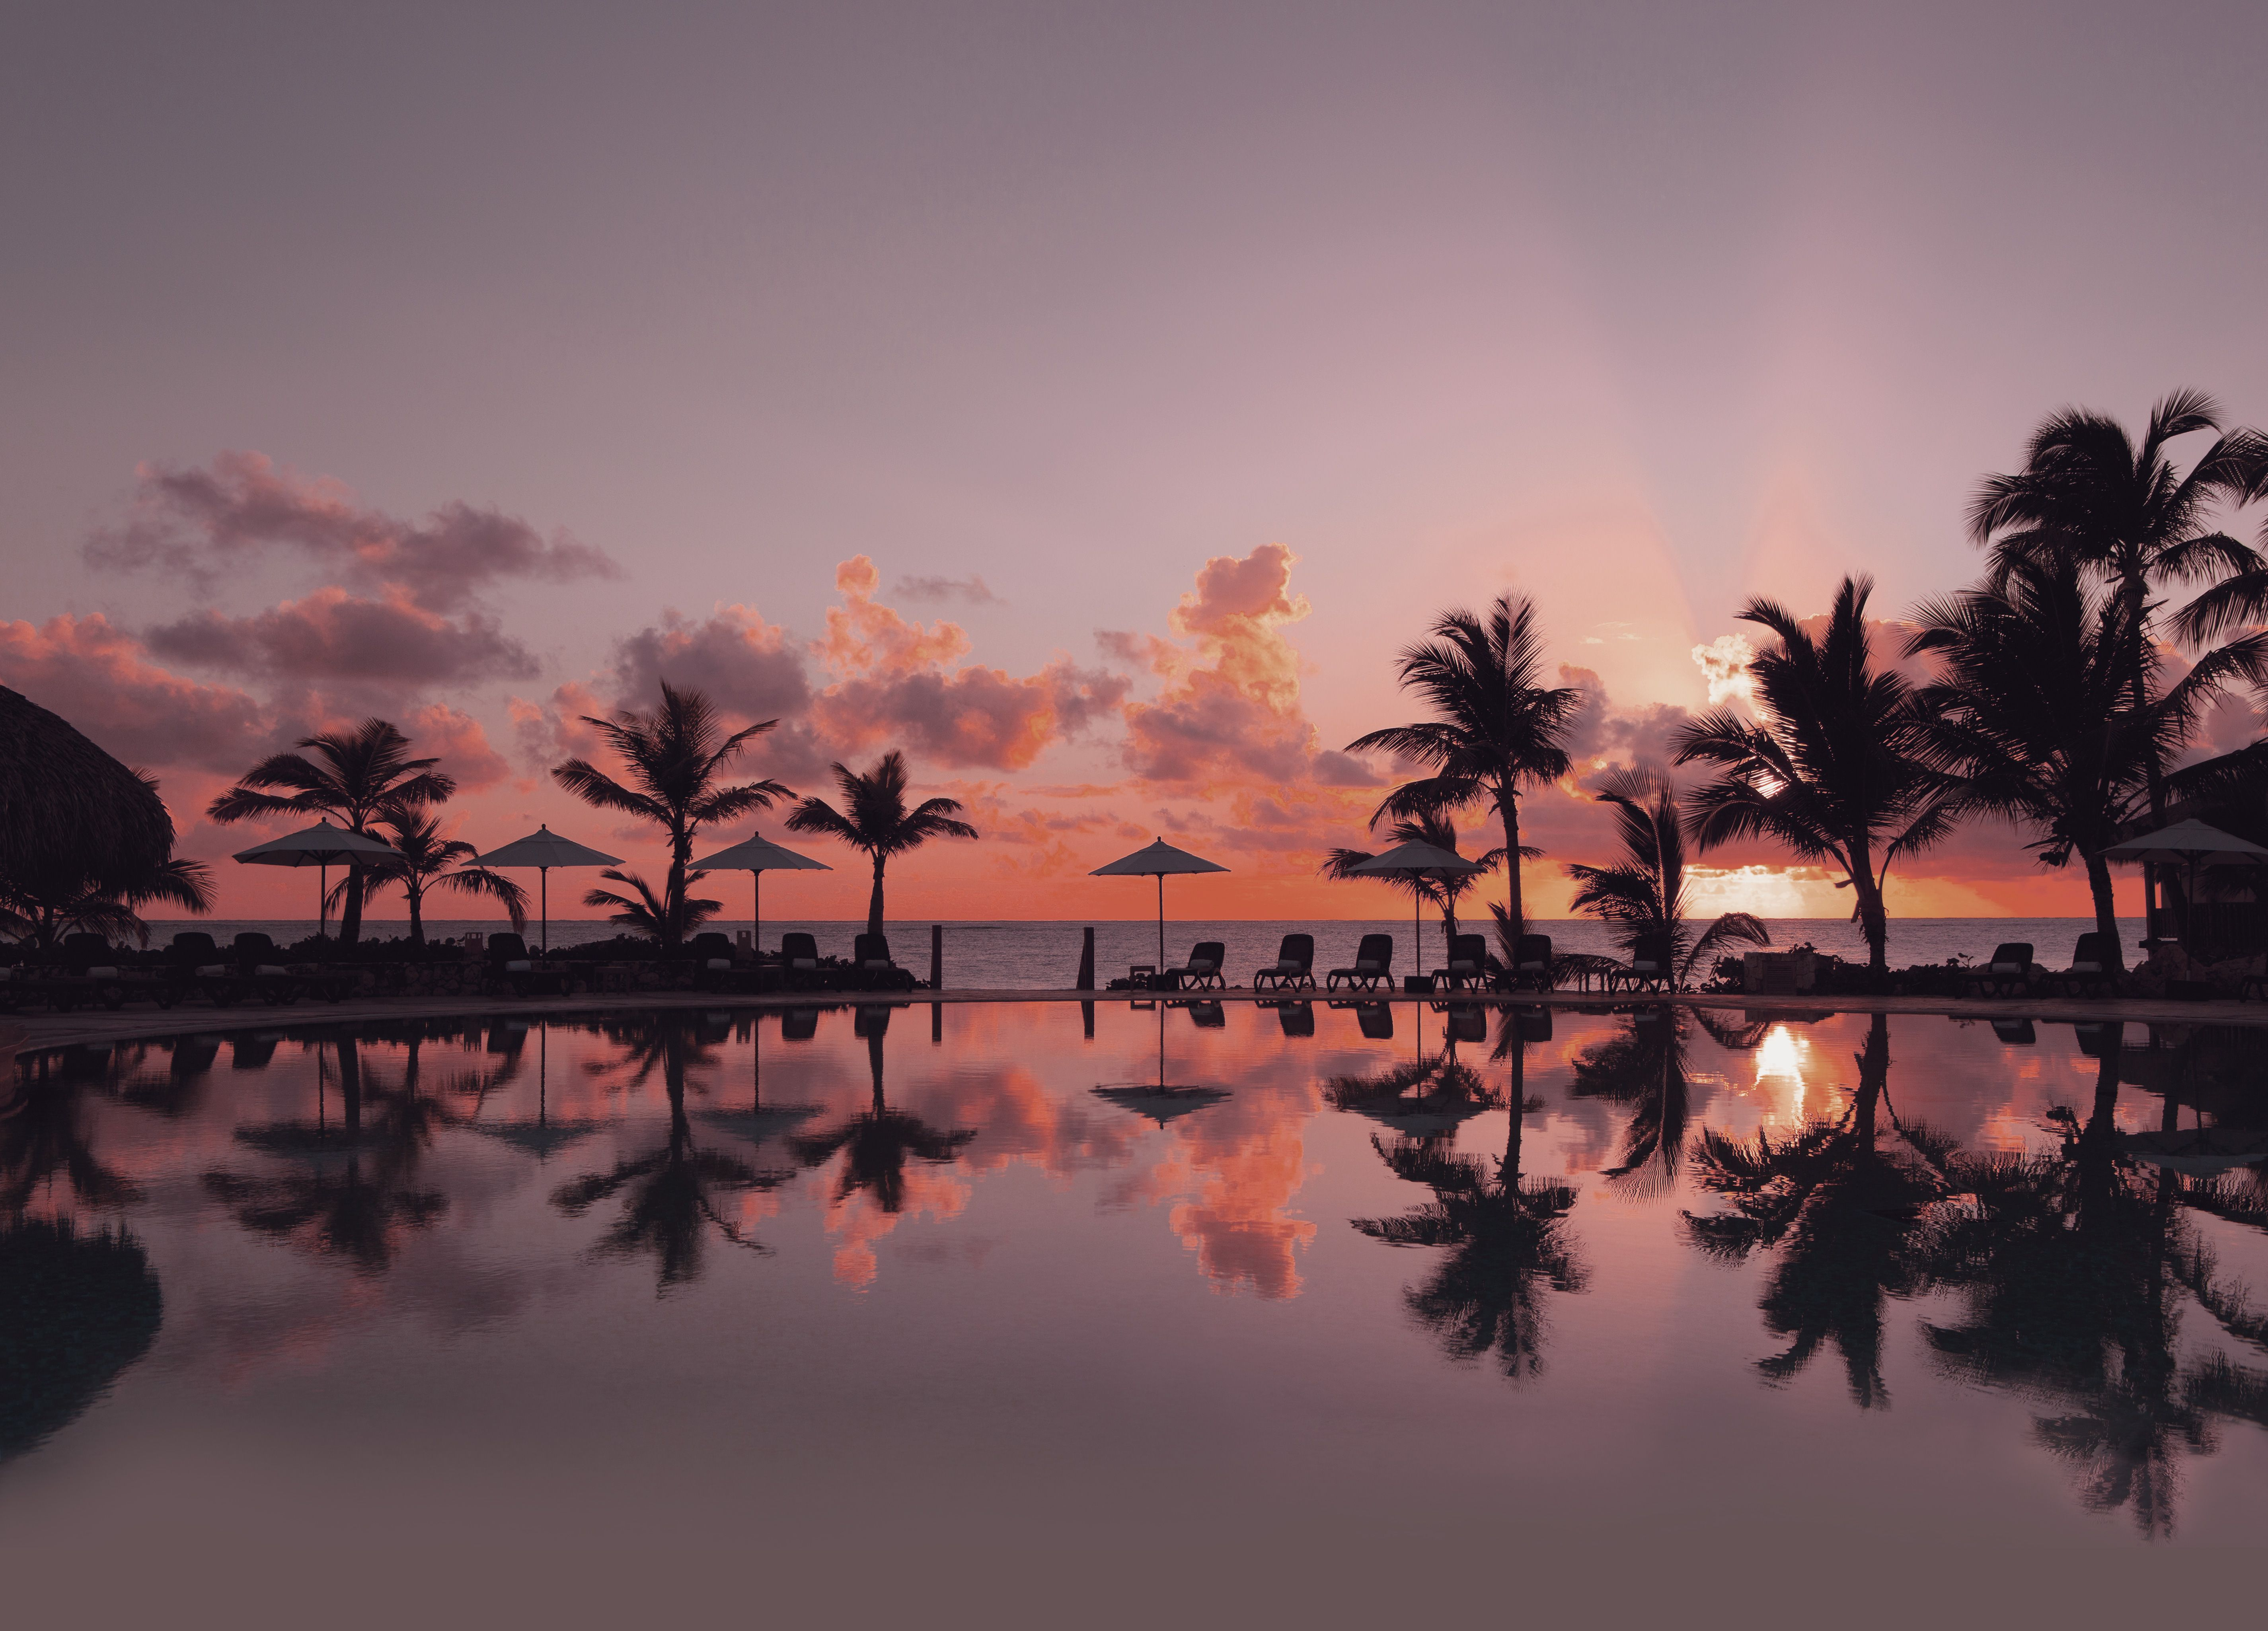 Enter For The Chance To Win An Amazing Bachelorette Getaway At Breathless Punta Cana